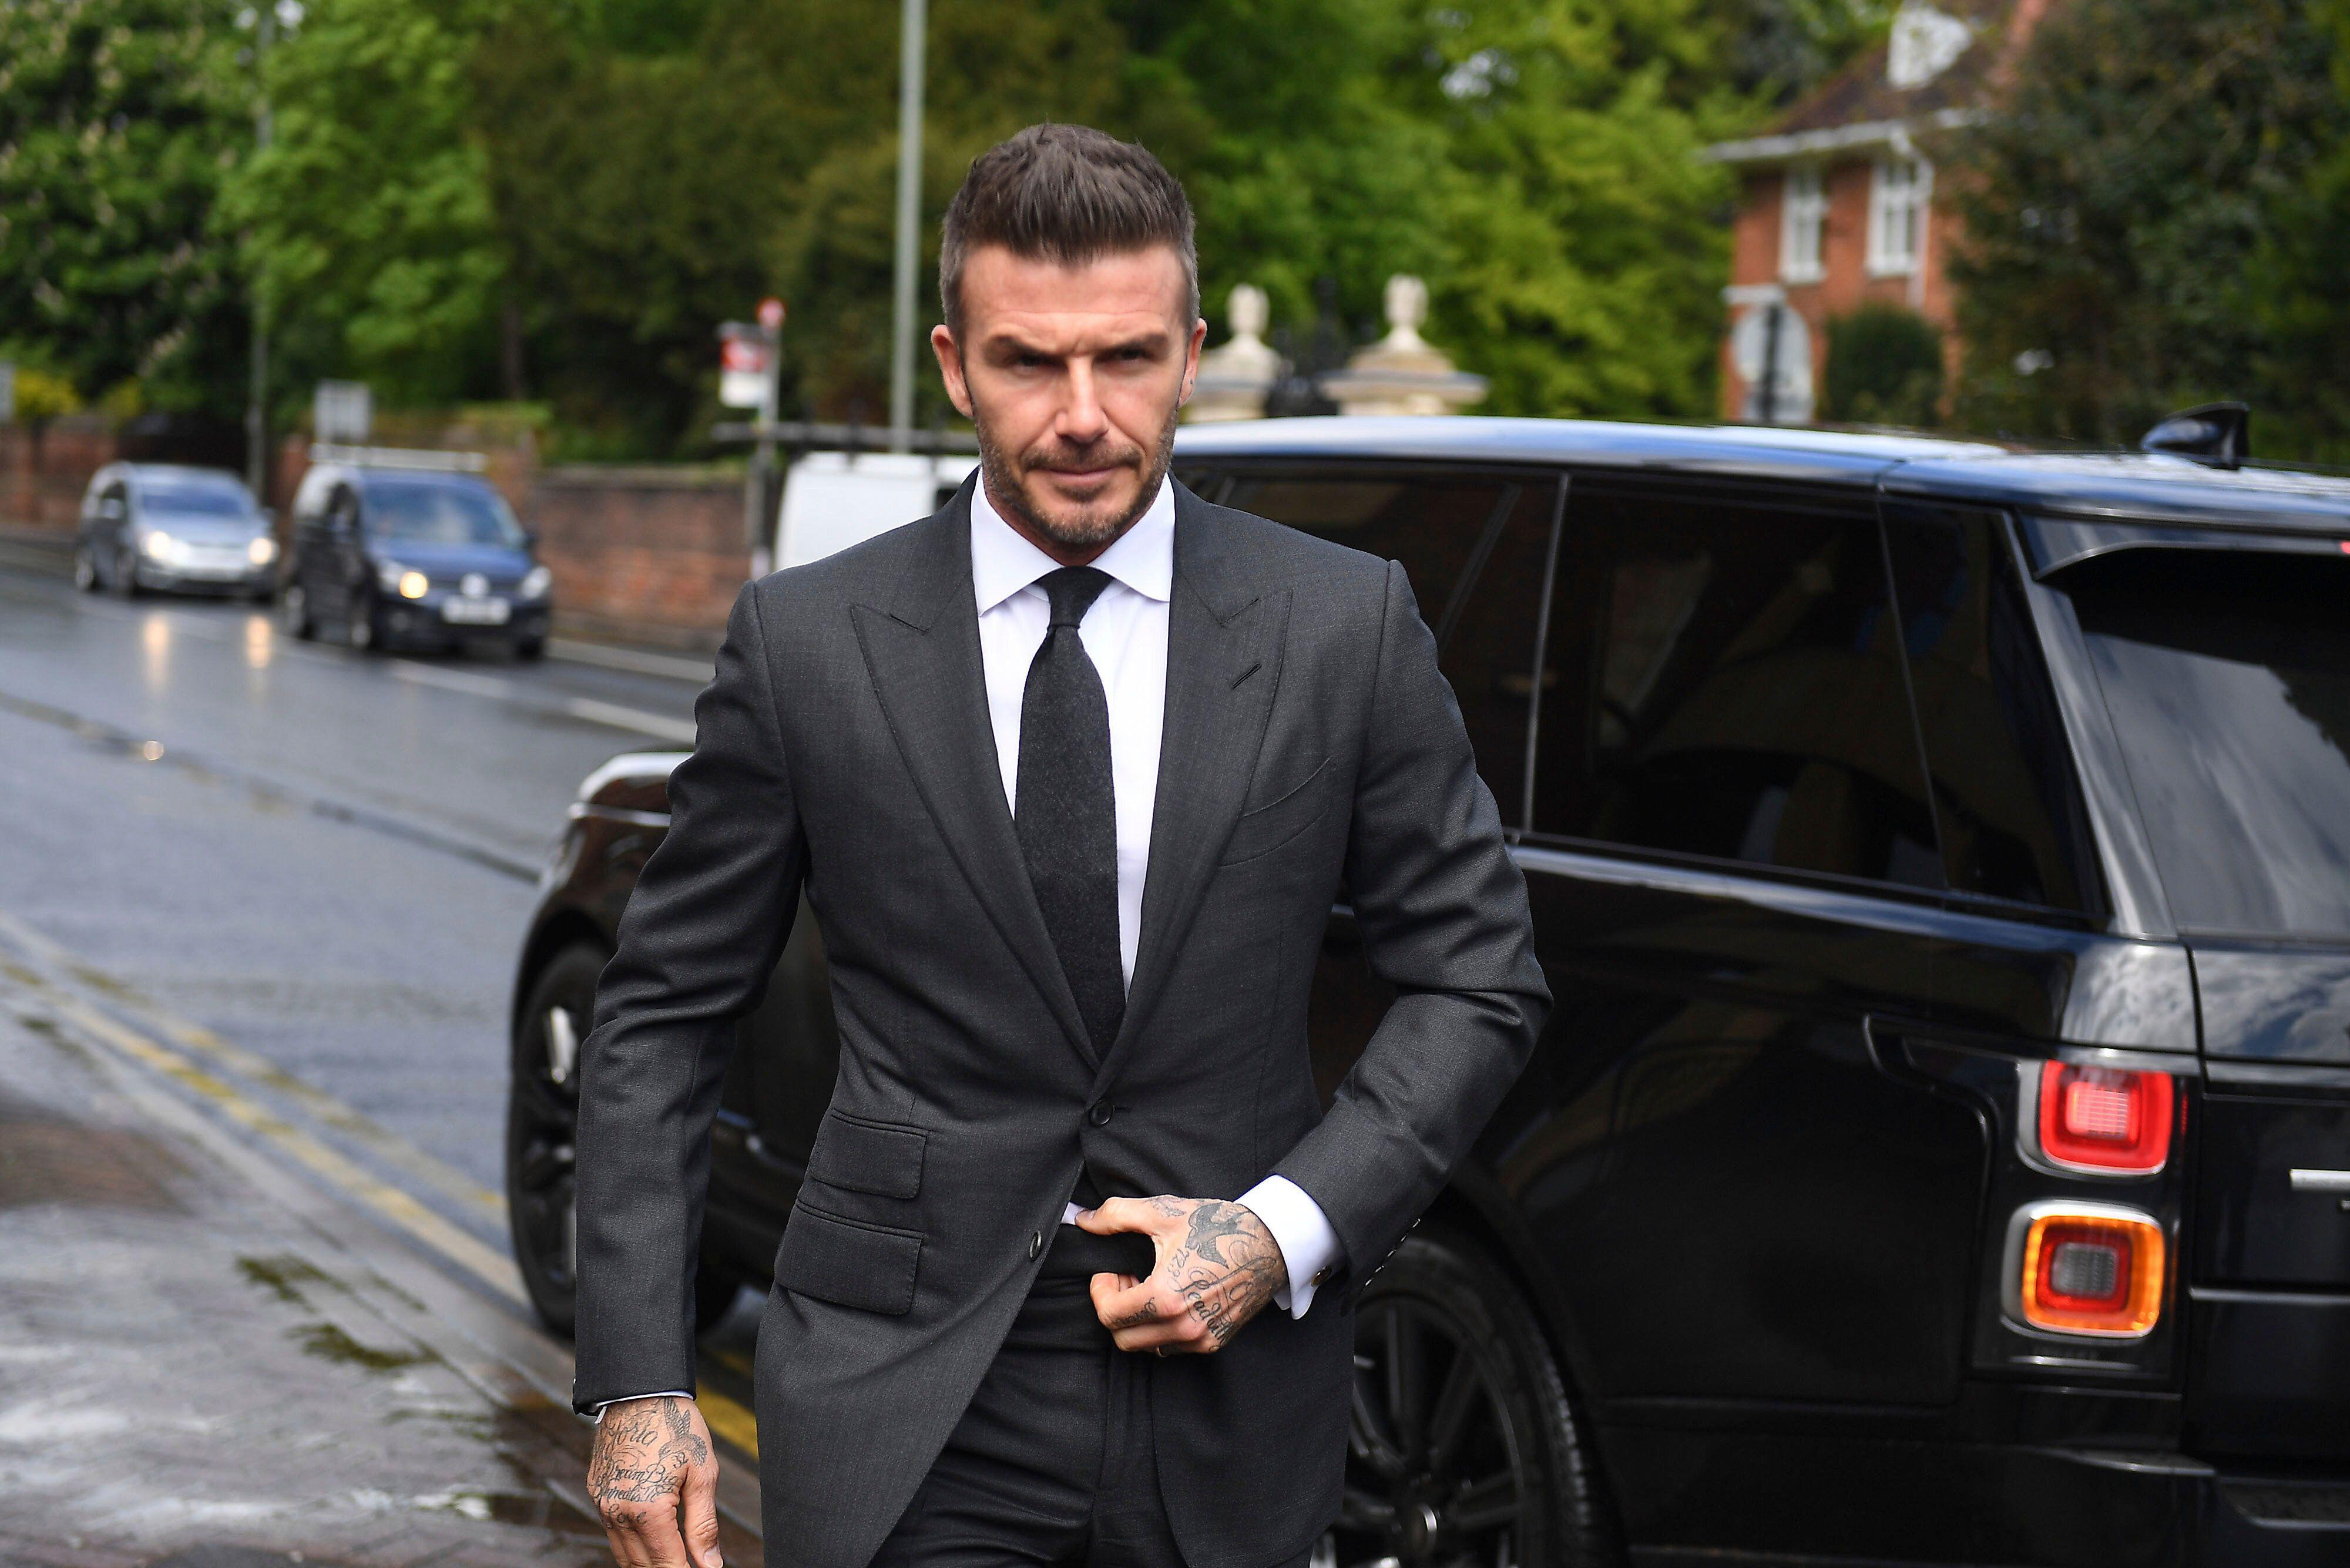 968aea2ed356 David Beckham loses driver's license for 6 months after using phone while  driving